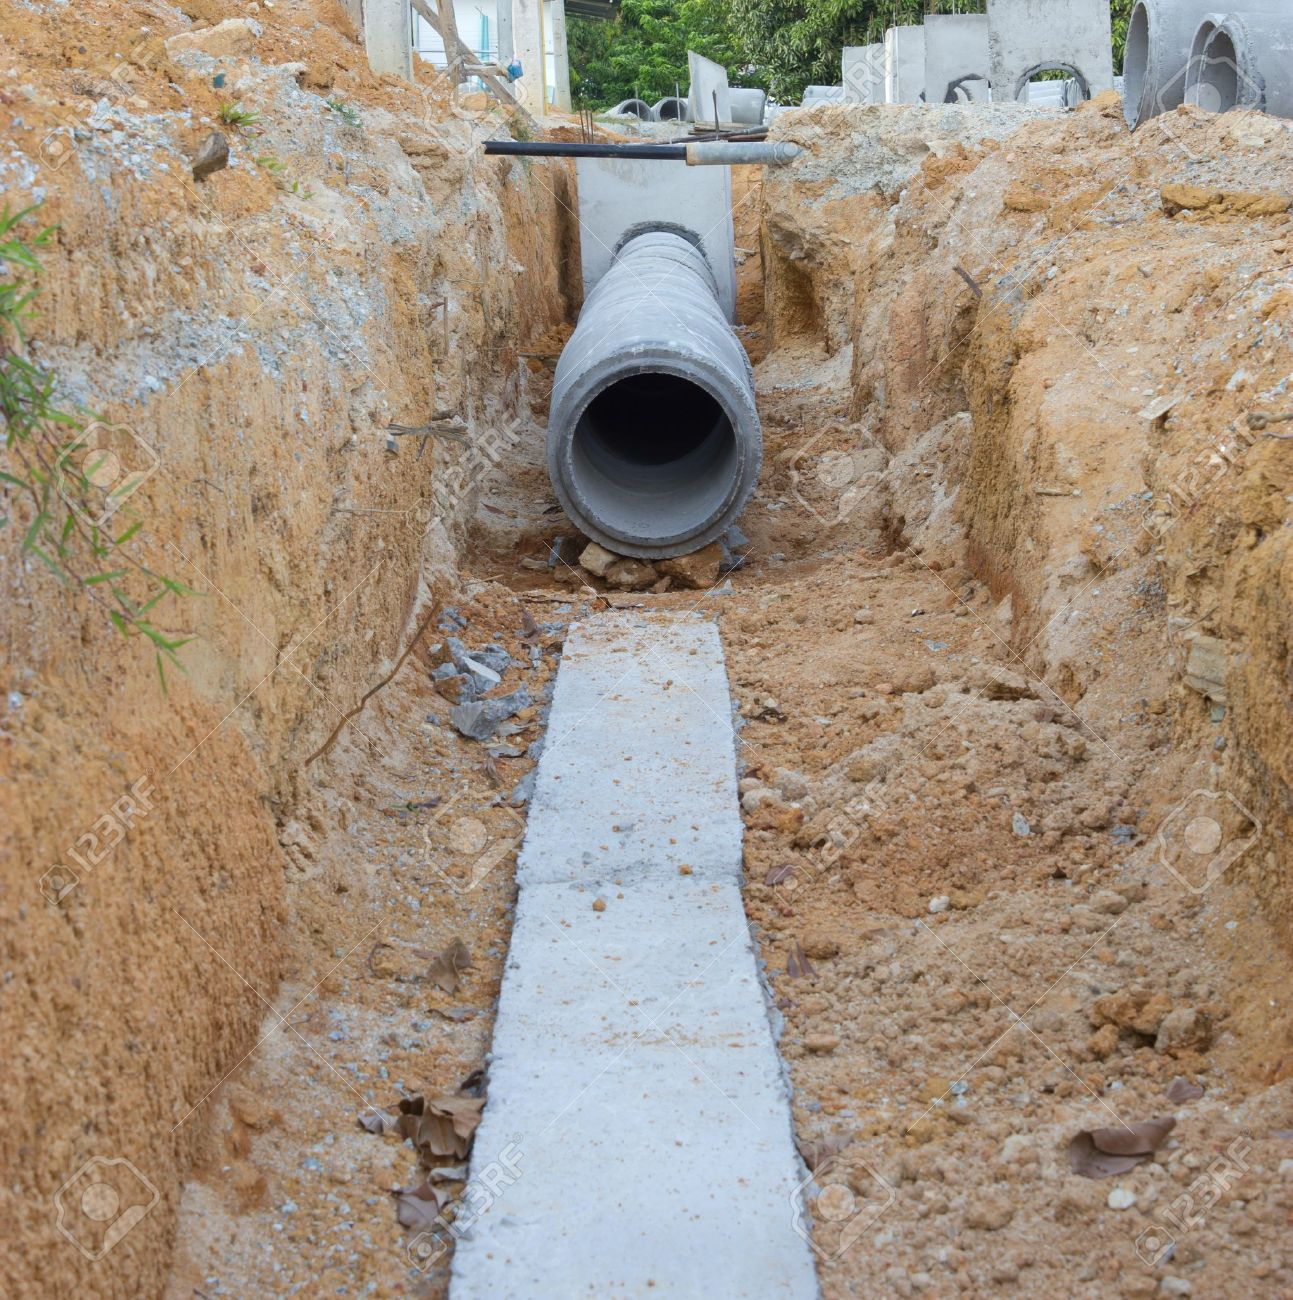 Concrete drainage tank on construction site Stock Photo - 12523642